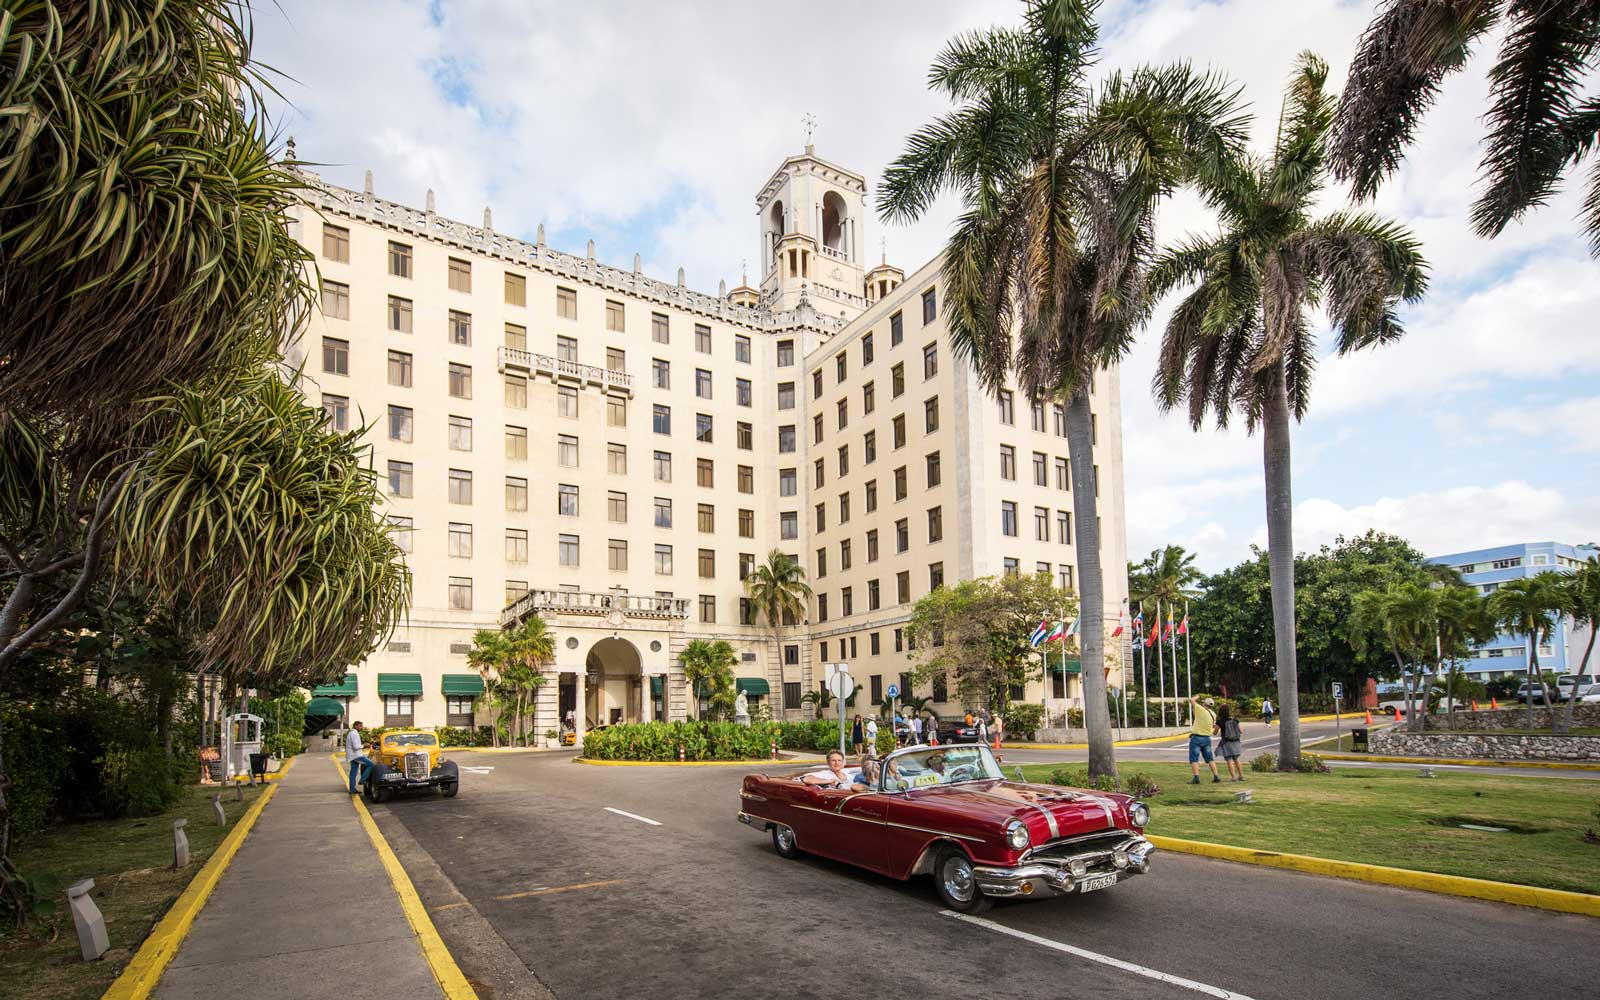 Havana's Famous Hotel Nacional Is Hiding a Secret Cigar Shop